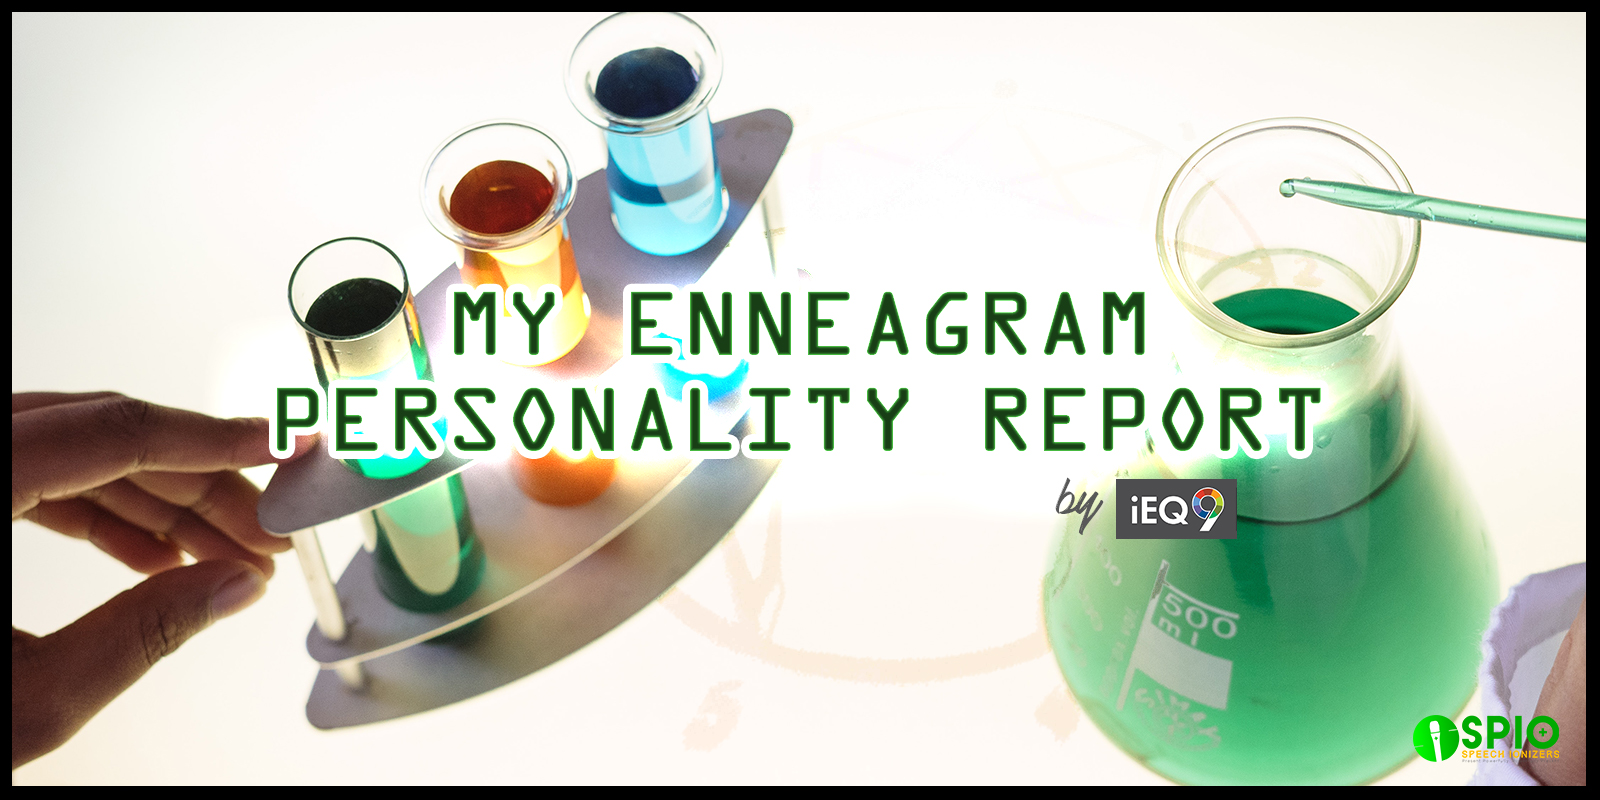 My Enneagram Personality Report